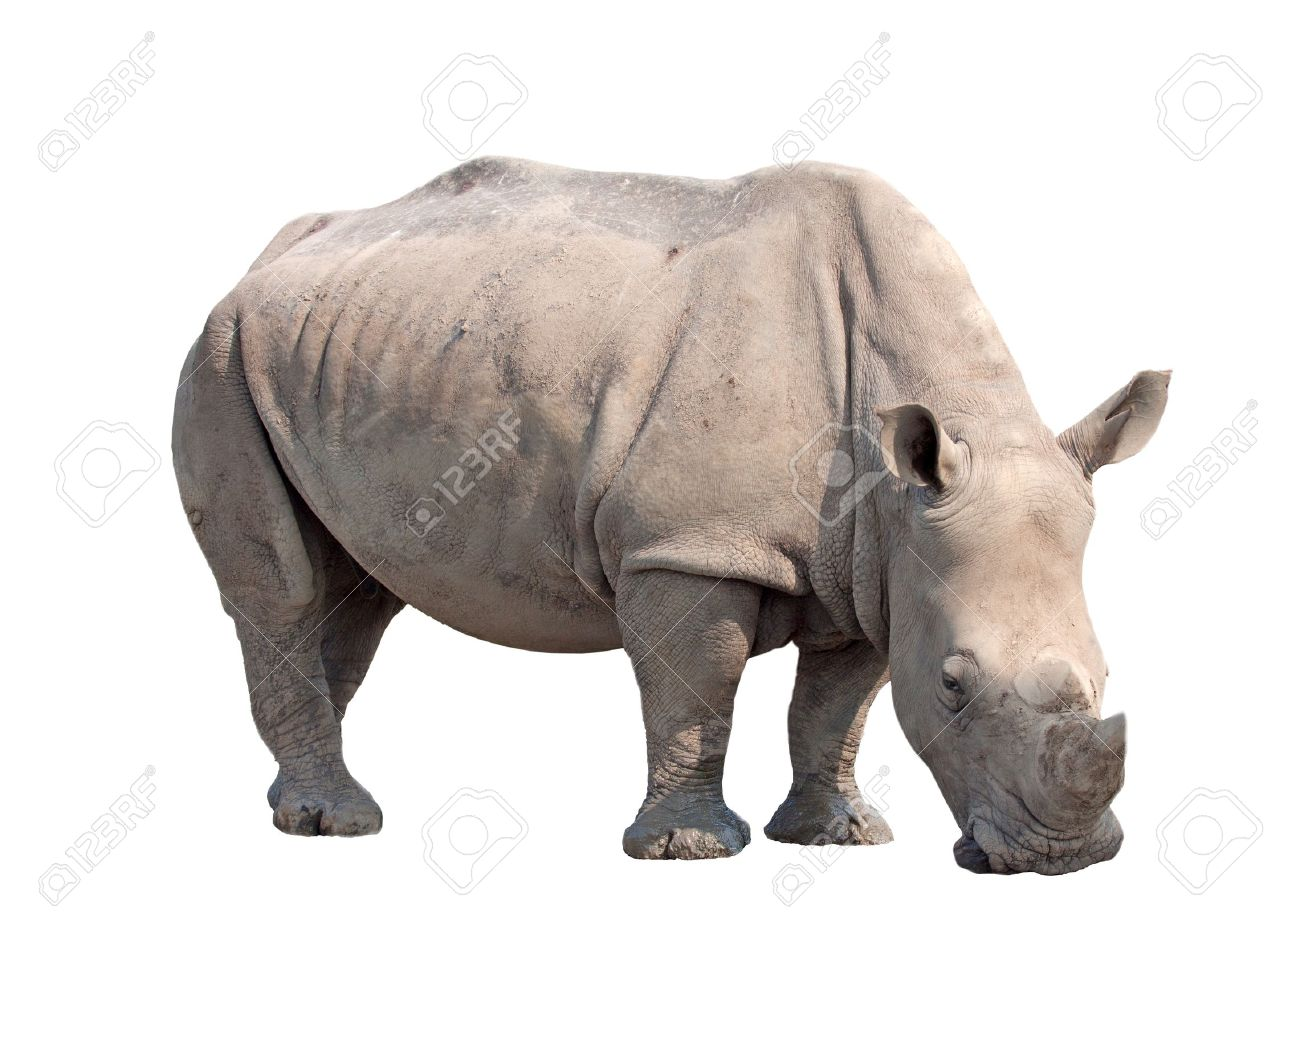 rhinoceros isolated on white background with paths - 15991428